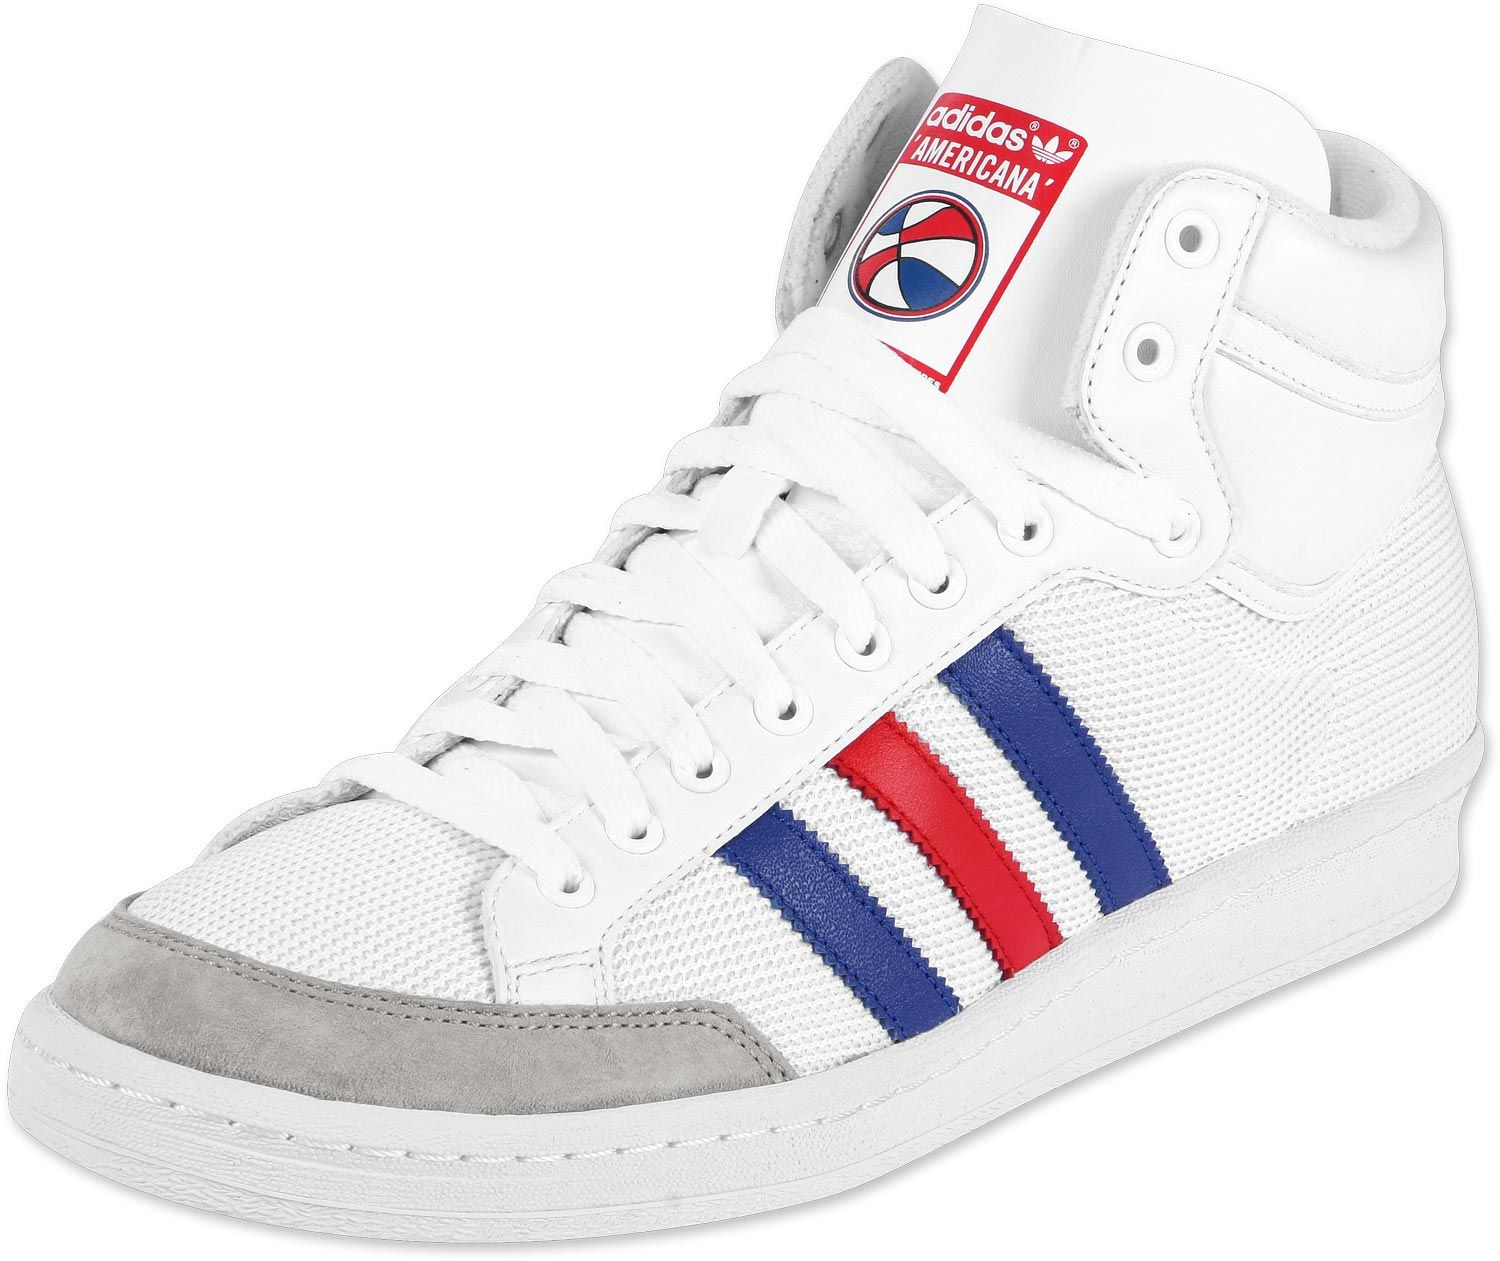 a7770442dd Adidas Americana Hi 88 | shoes with flavor/ shoe caine | Sneakers ...